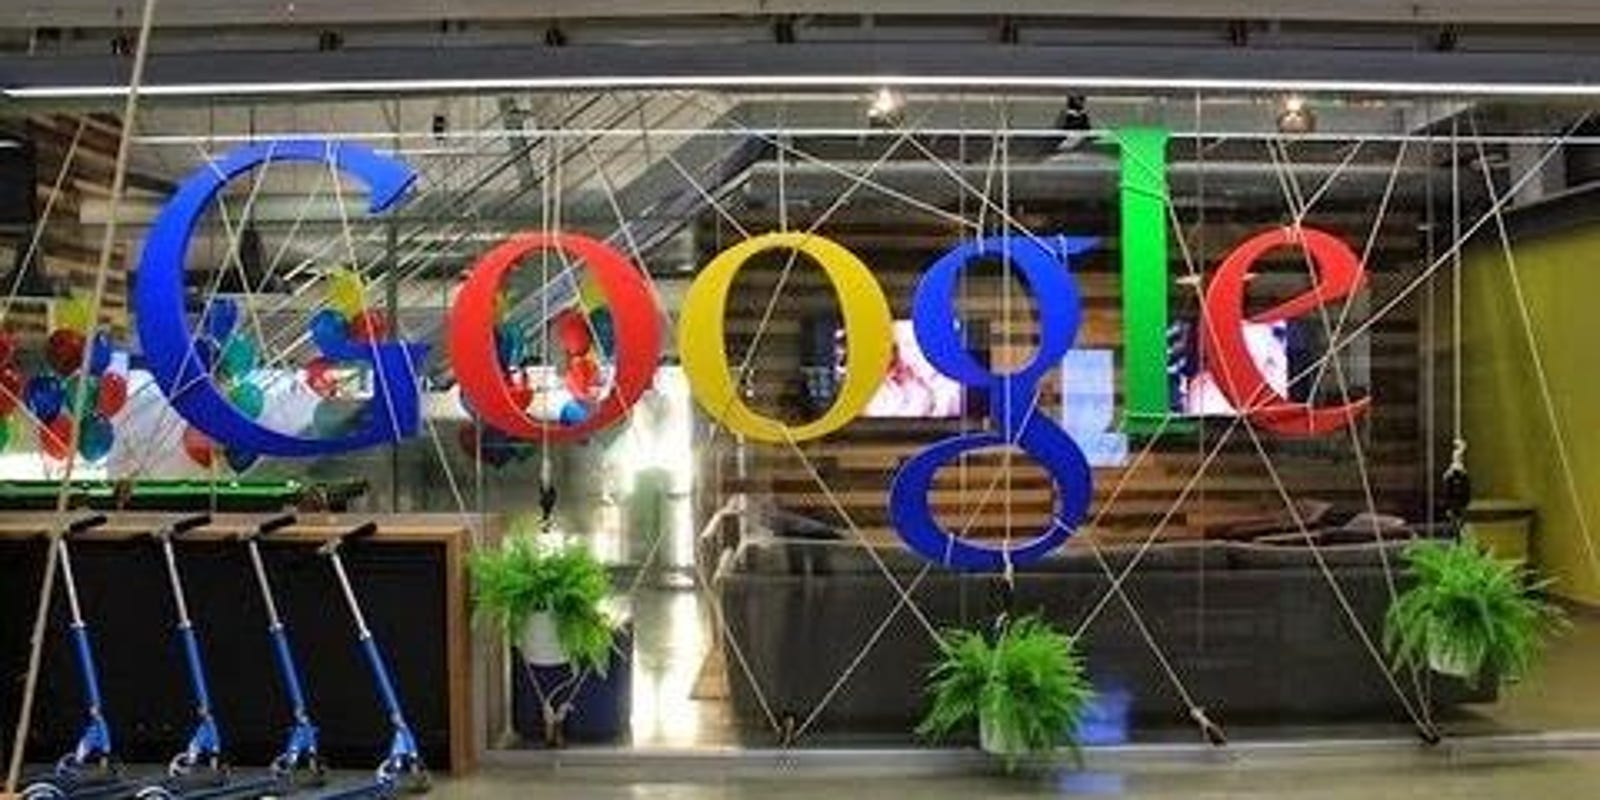 Google will auto-delete location and search histories by default